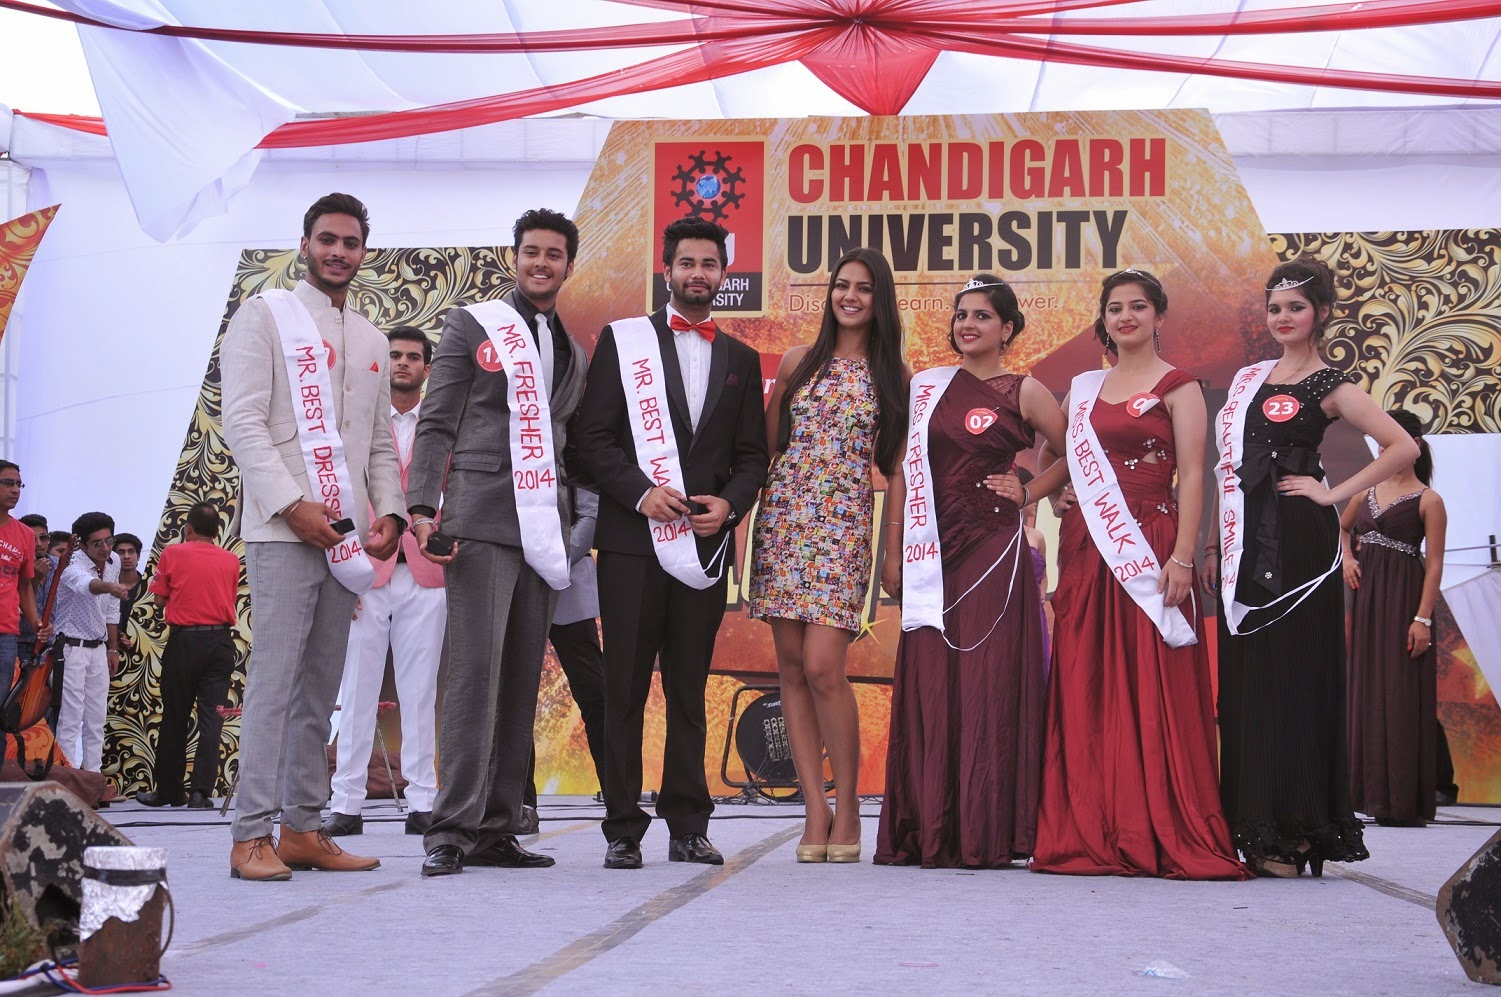 Chandigarh University Cu Chandigarh Placements Fees Admissions 2021 22